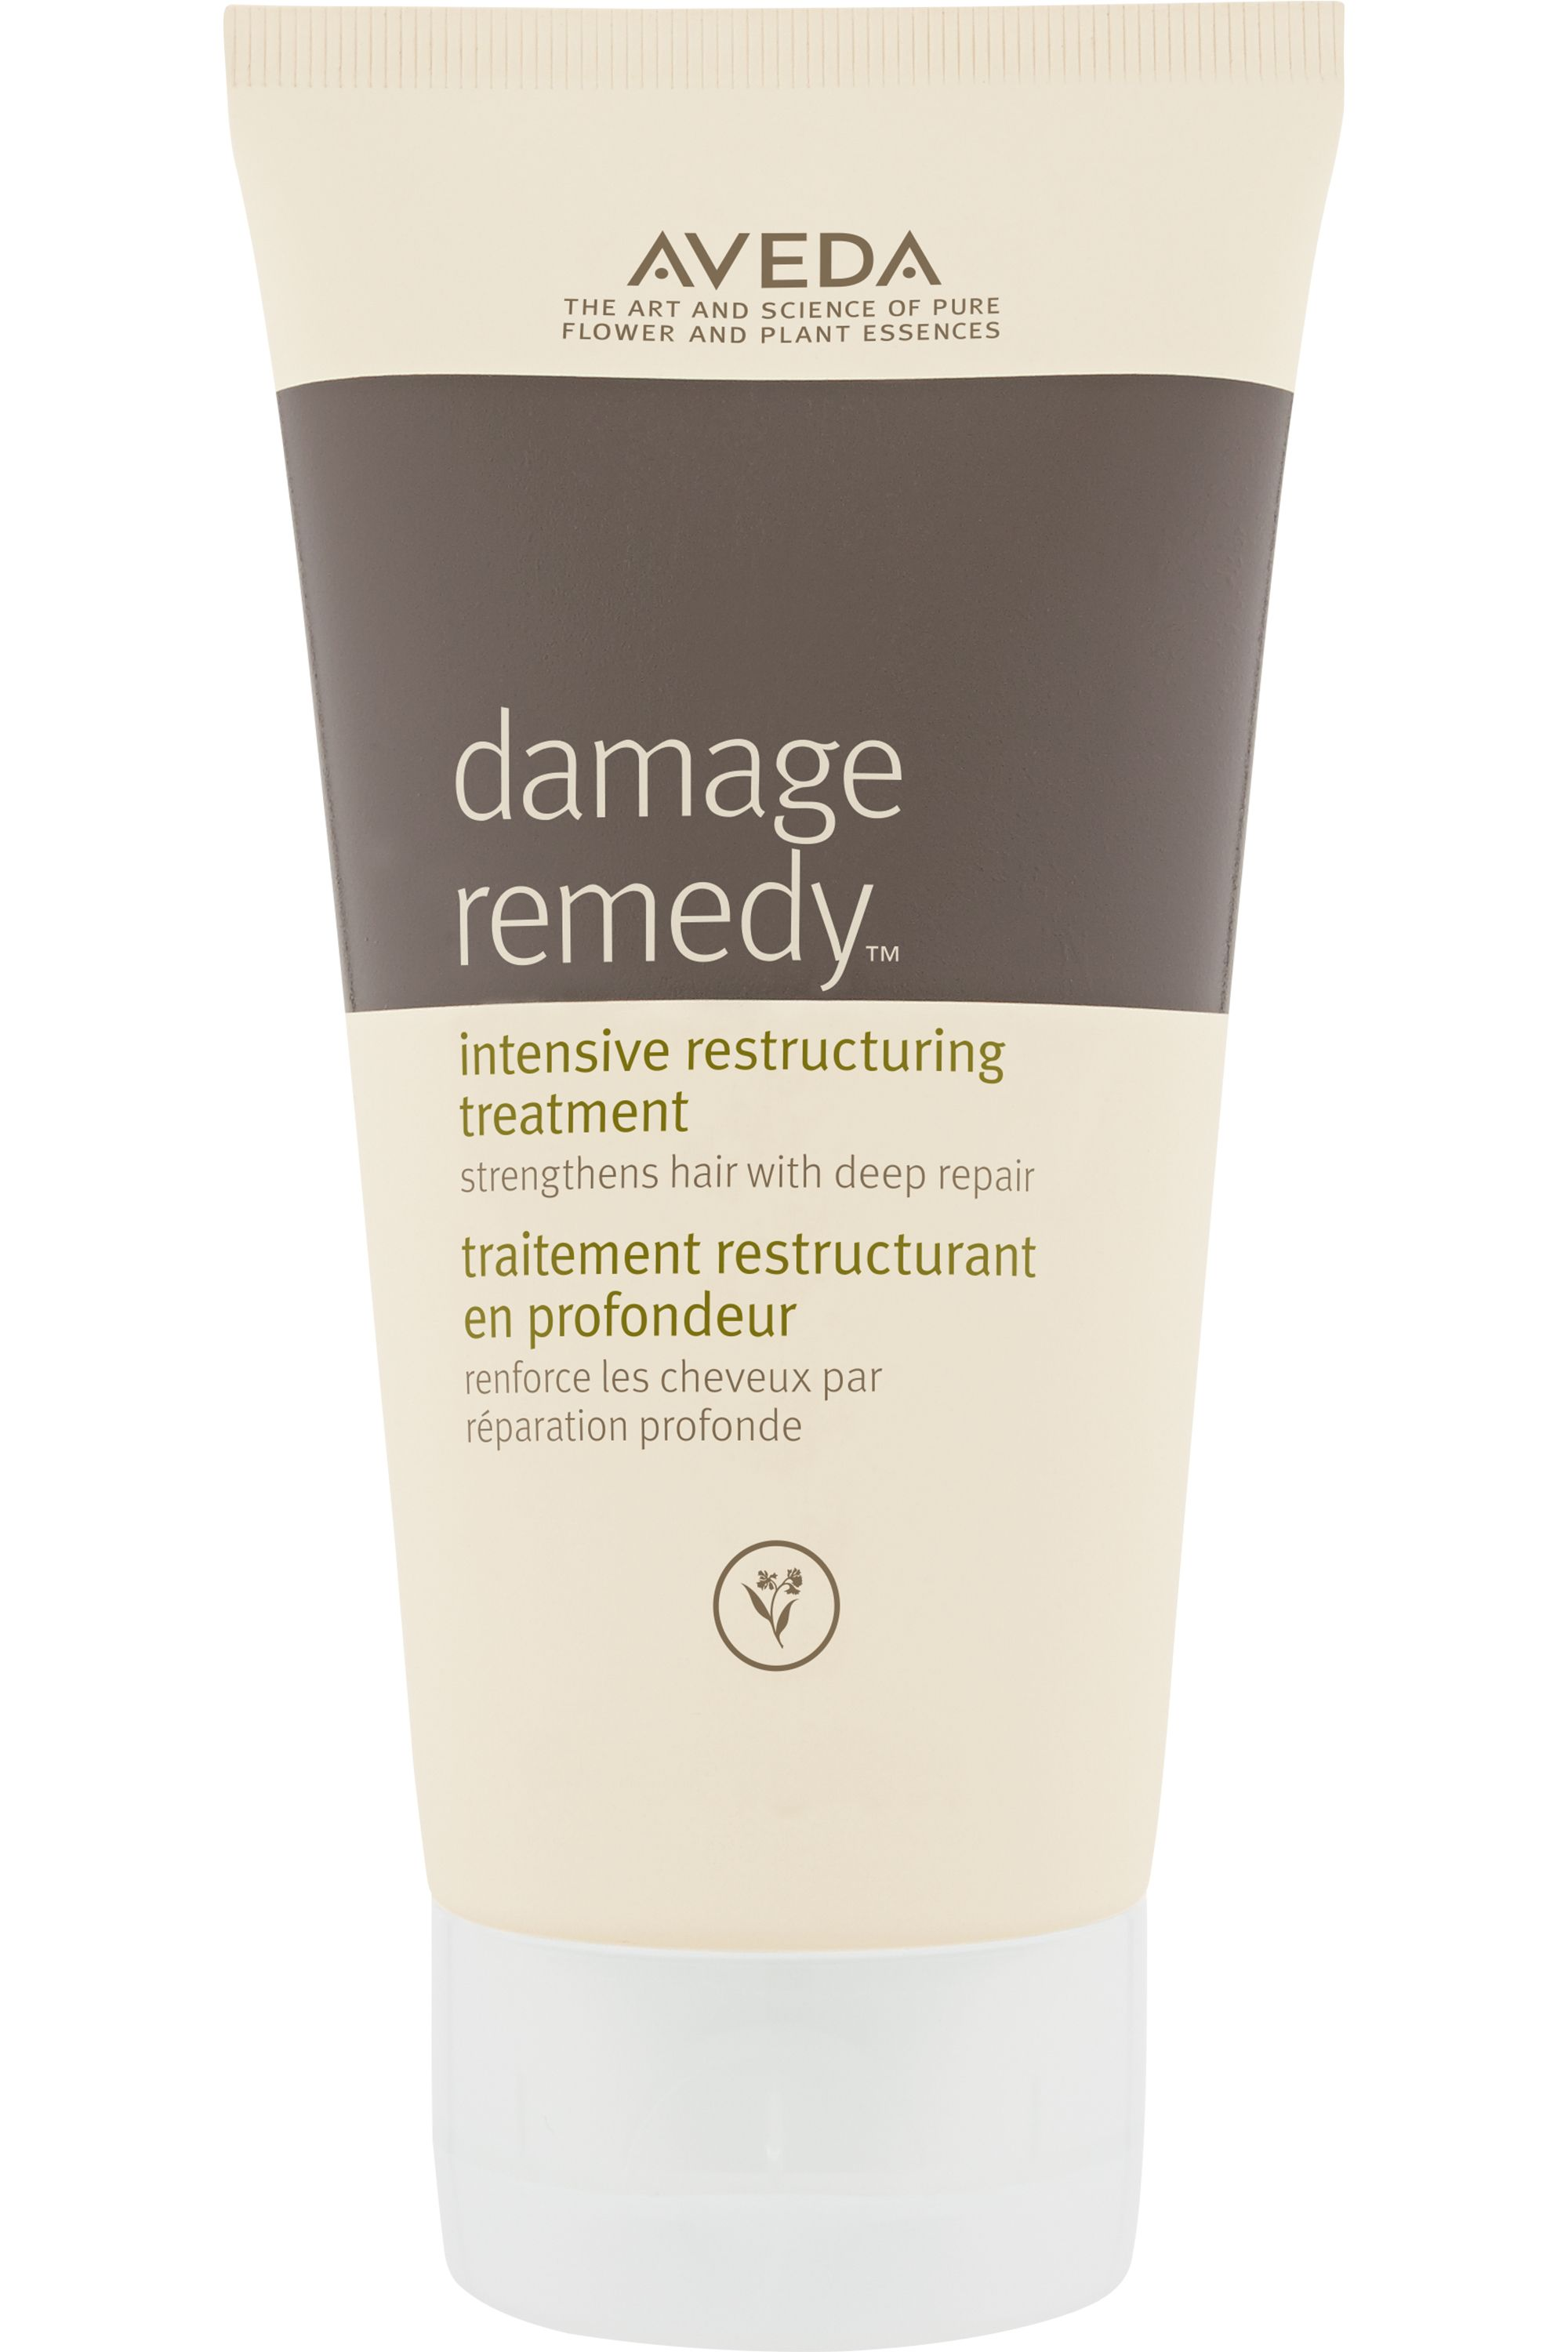 Blissim : Aveda - Soin traitement restructurant Damage Remedy™ - Soin traitement restructurant Damage Remedy™